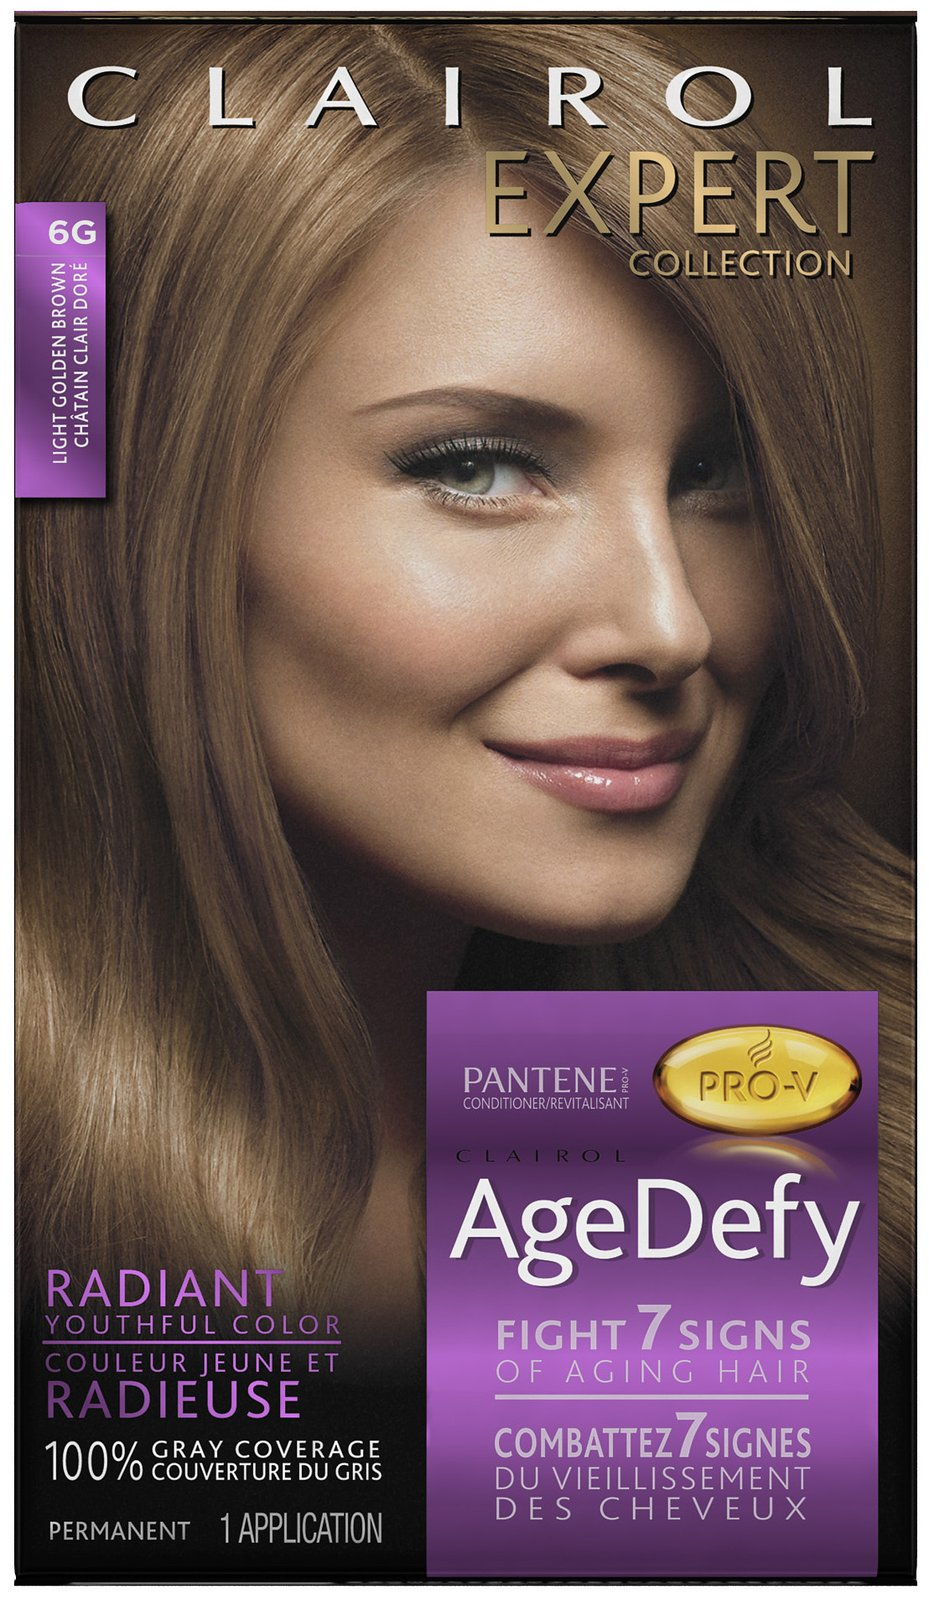 Clairol Expert Age Defy Hair Color Only 3 99 At Publix